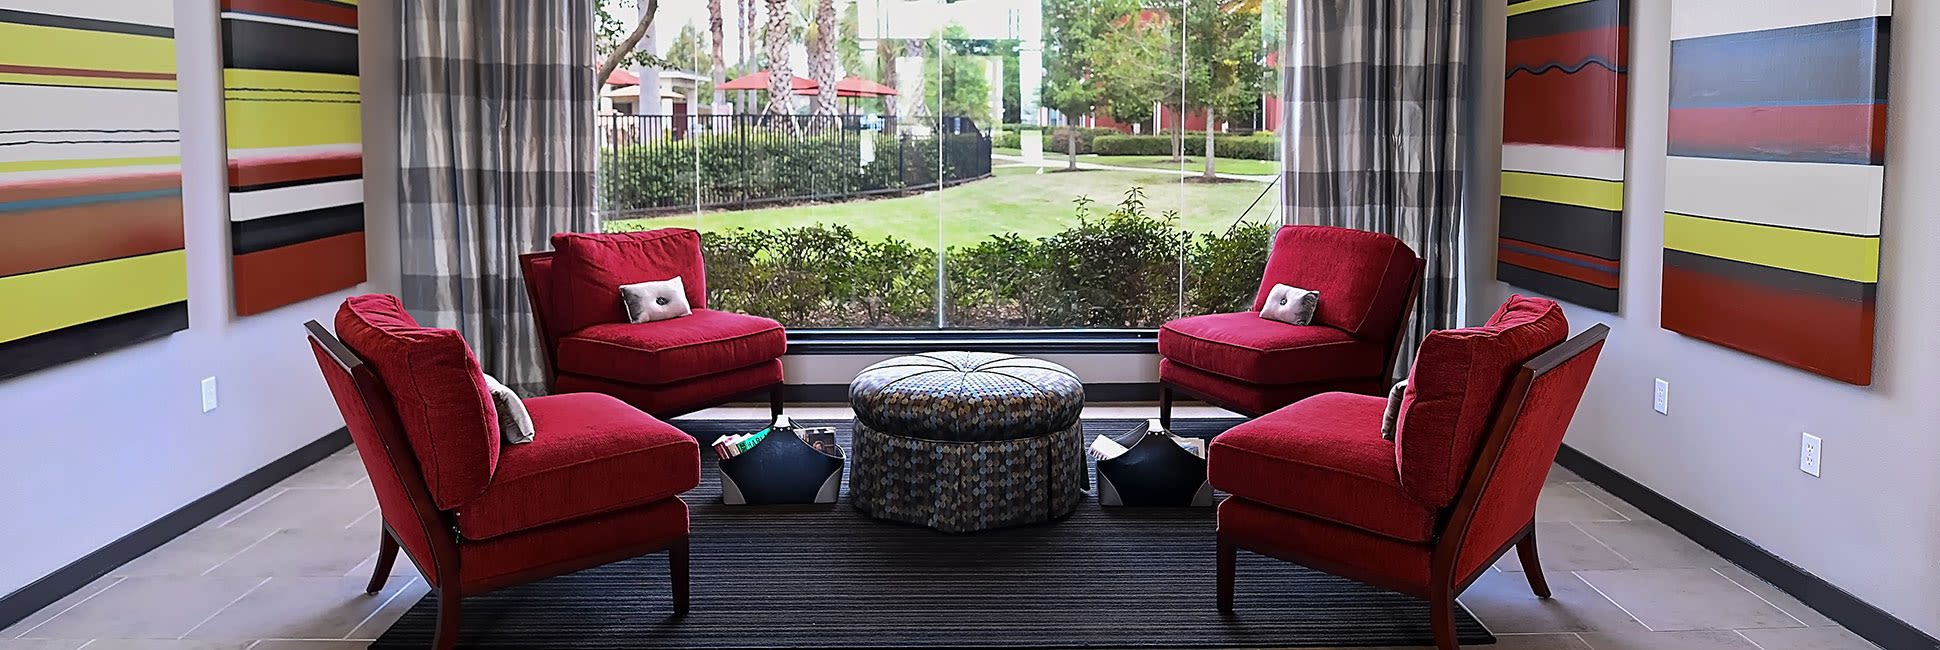 Resident information for the apartments for rent in Baton Rouge